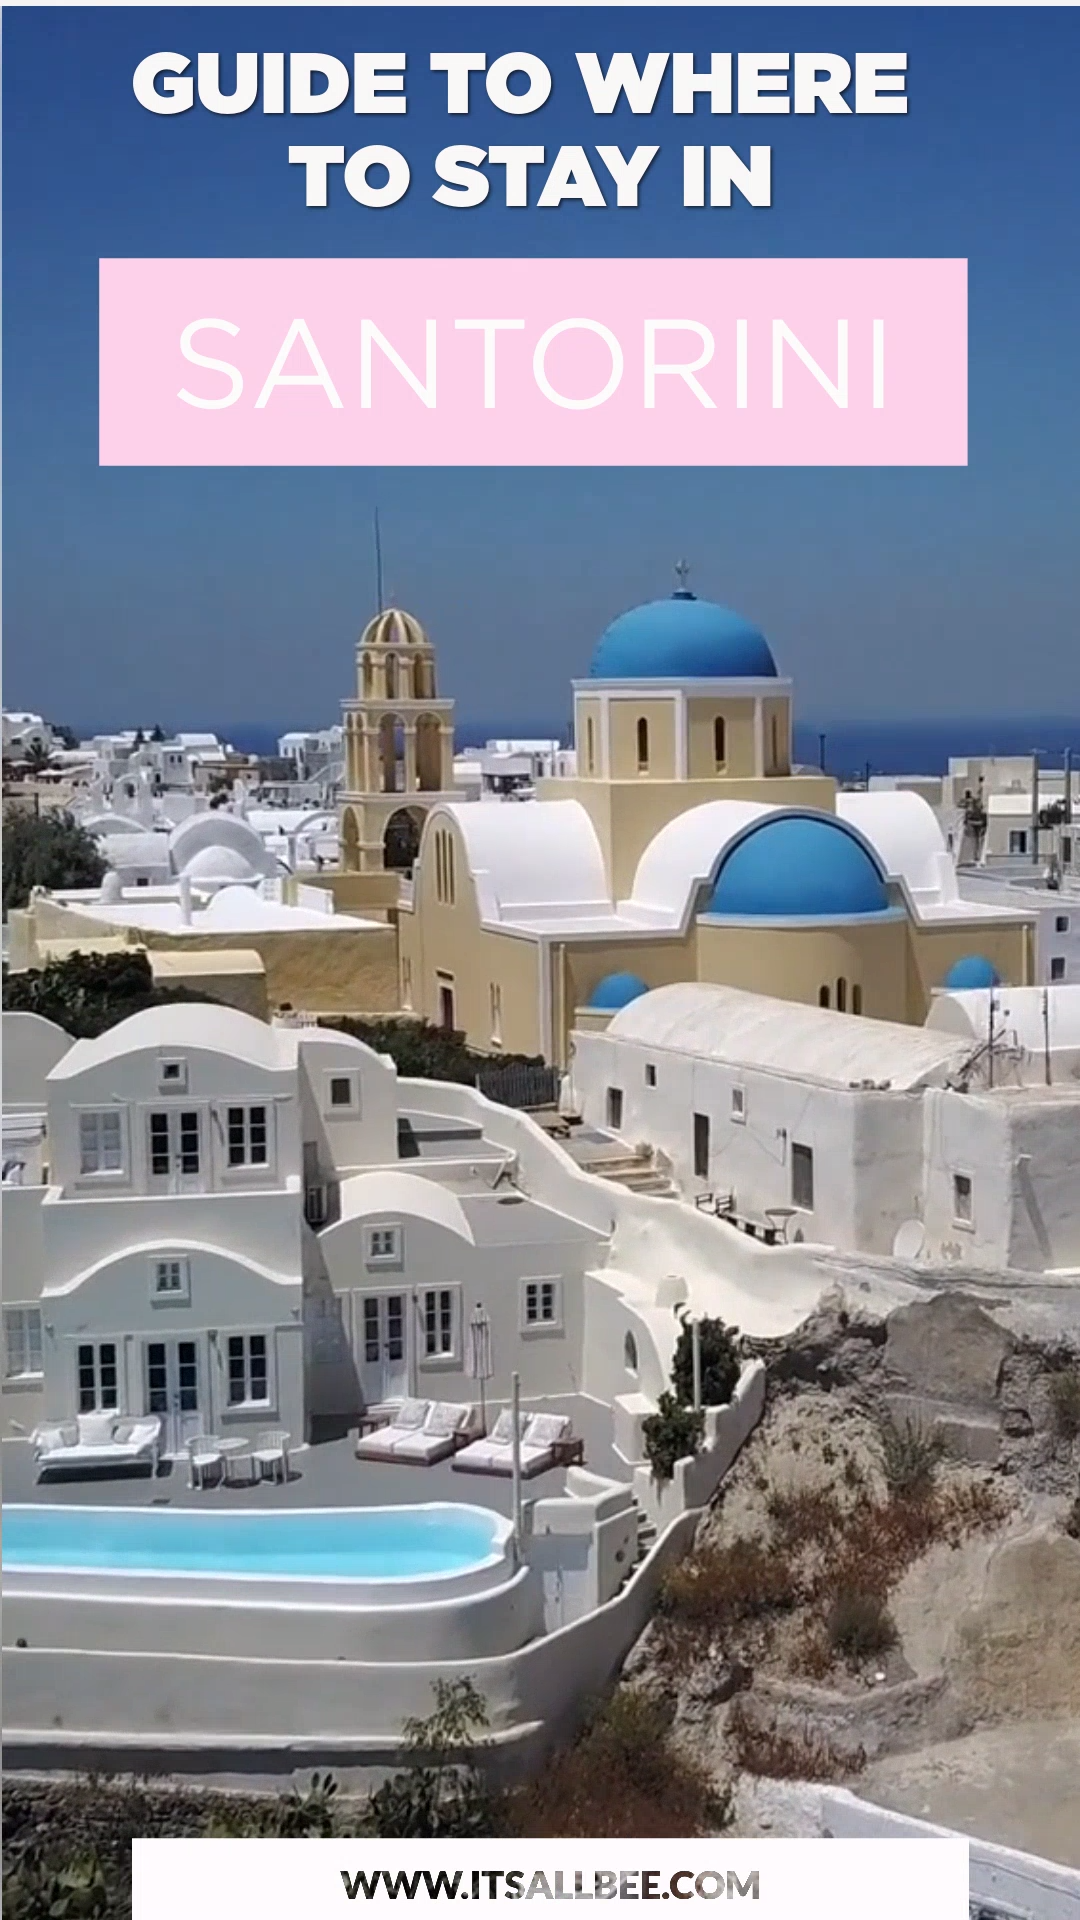 A guide to the best places to stay in Santorini. From Infinity pool hotels to private pool villas on the Greek Island. Everything you need to know about the best town to stay in Santorini to things to do when you visit. #Santorini #traveltips #Greece #daytrips #Oia #Fira #perissa #beaches #room #villas --------------- where to stay in santorini hotels | where to stay in santorini on a budget | where to stay in santorini honeymoons | best place to stay in santorini | santorini hotel luxury